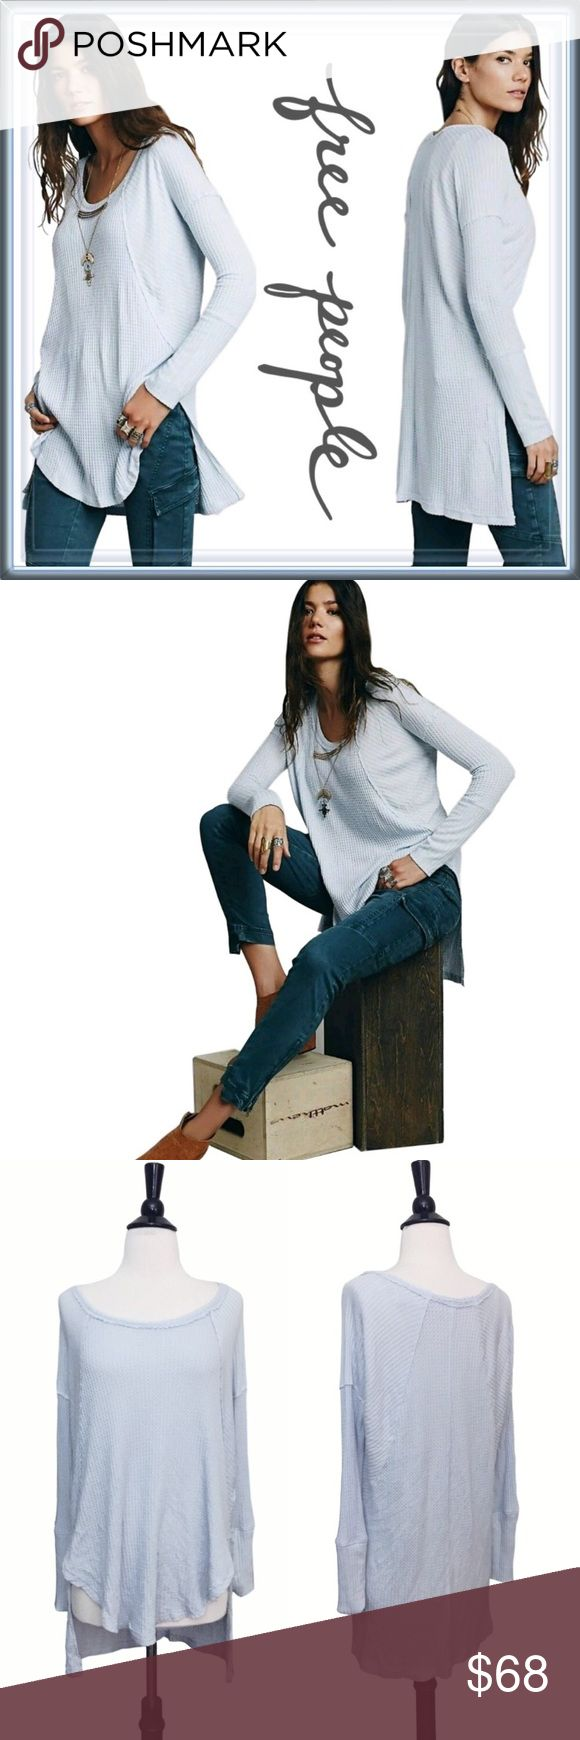 People sitting in waffle chair - Free People Ventura Drippy Thermal